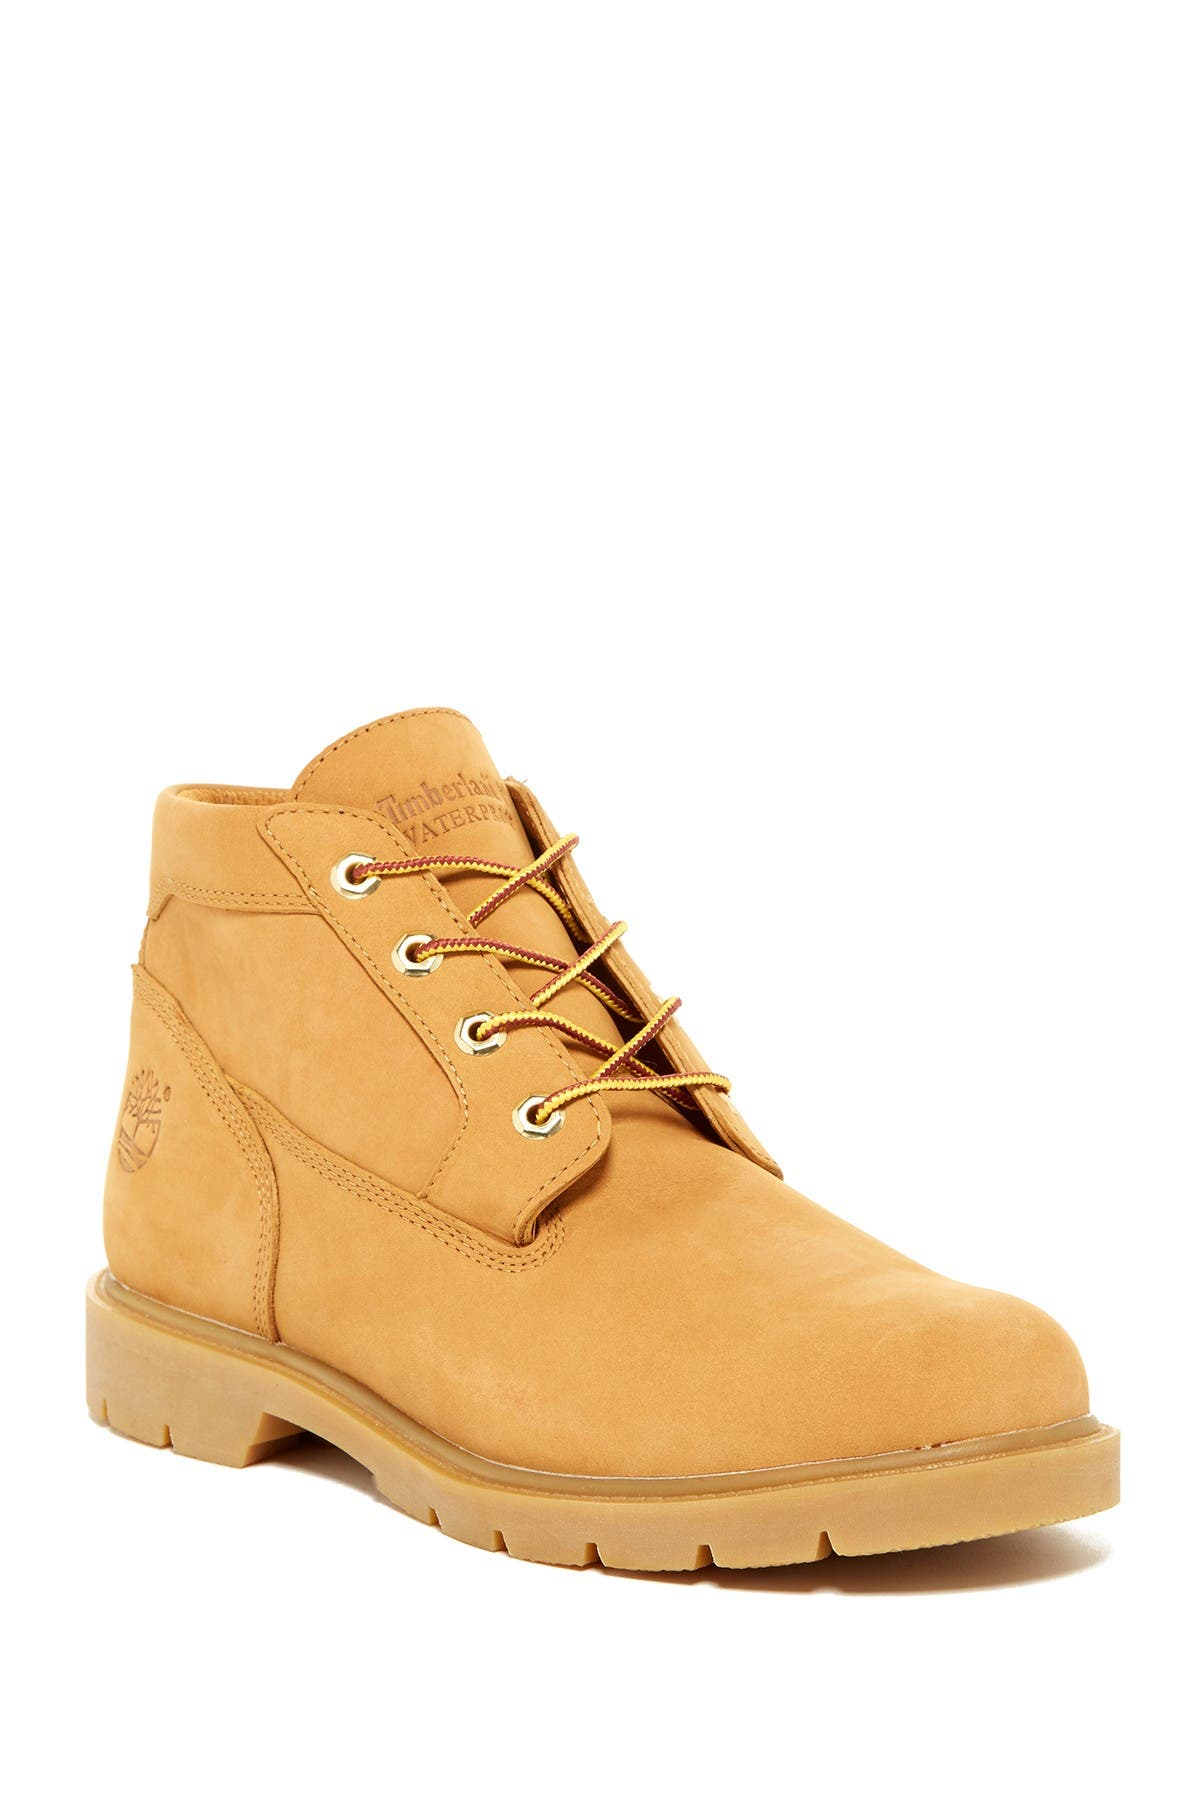 Image of Timberland Classic Waterproof Leather Chukka Boot - Wide Width Available